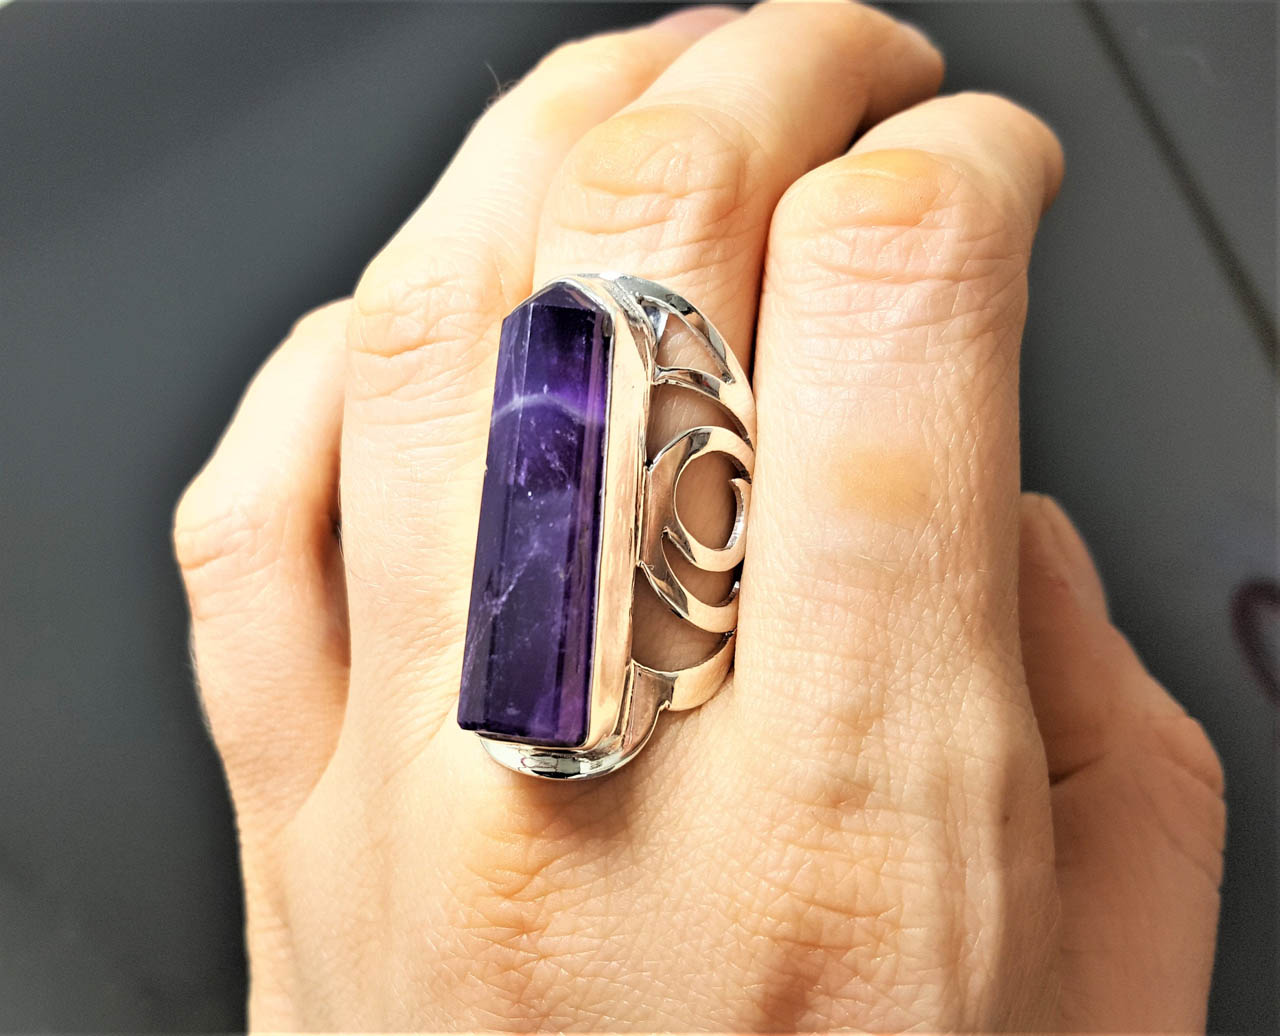 Natural Brazilian grade AAA amethyst set on a high quality silver ring